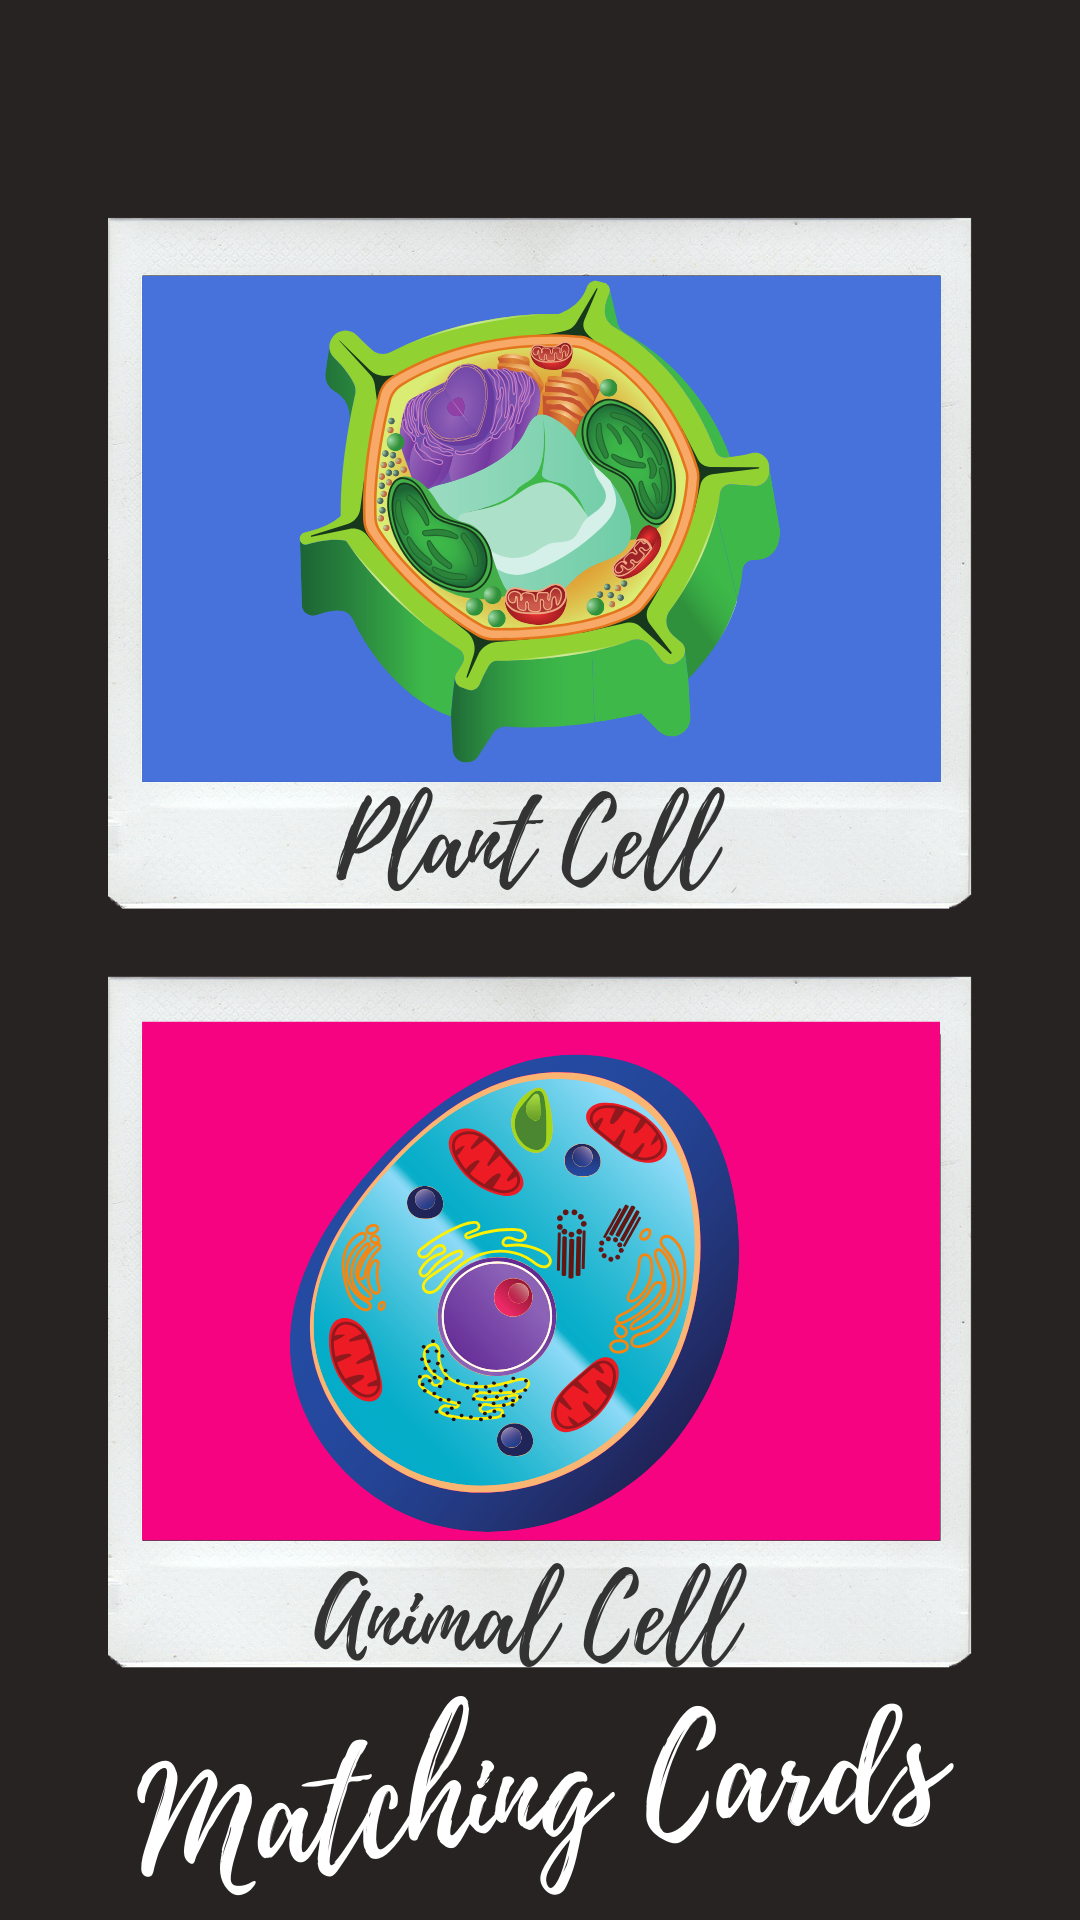 Cells Matching Cards Plant, animal cells, Matching